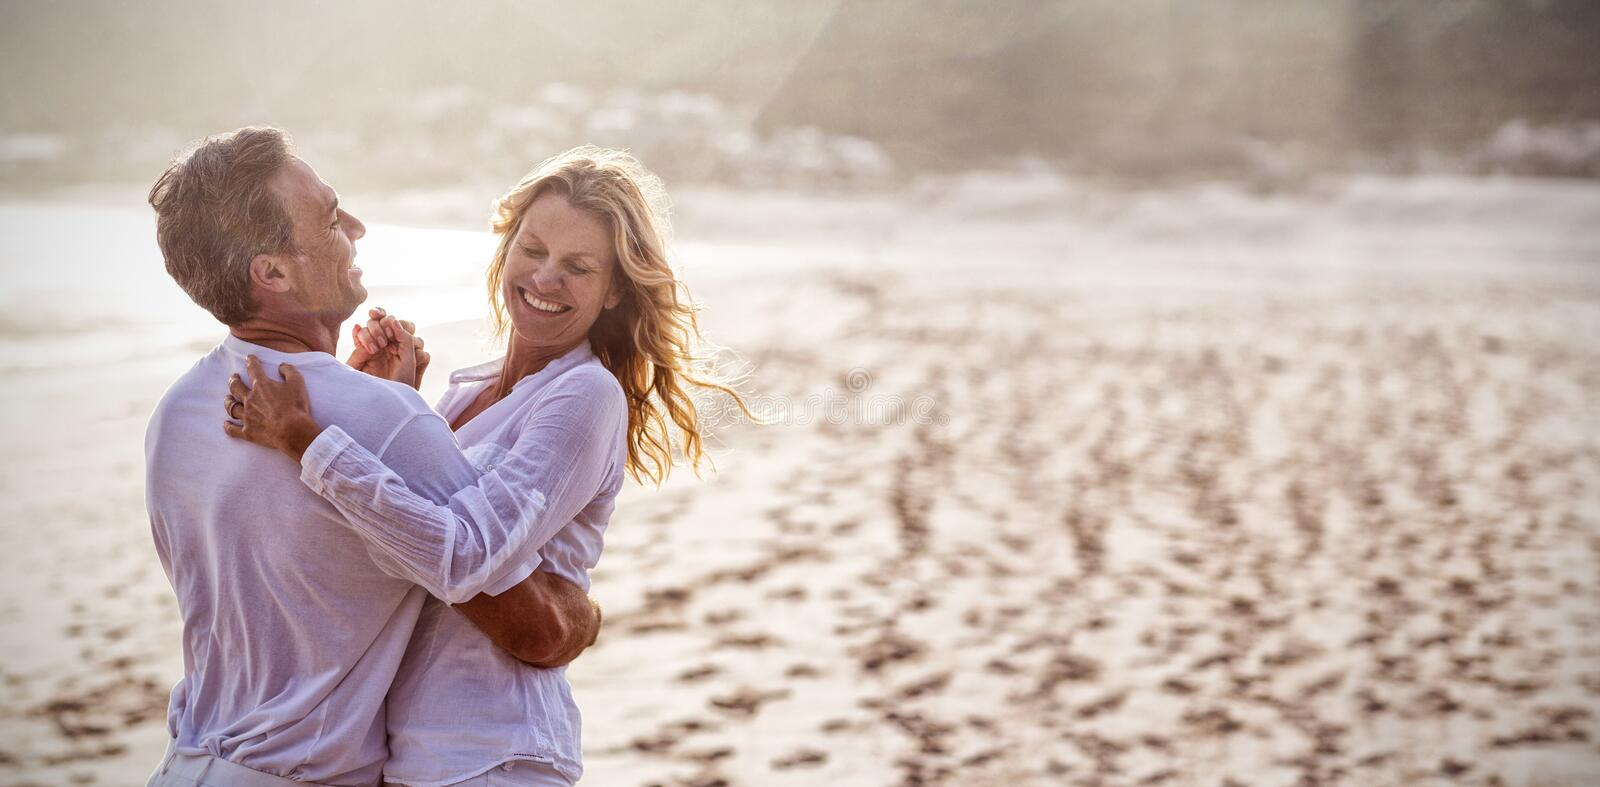 Mature couple having fun together at beach royalty free stock image